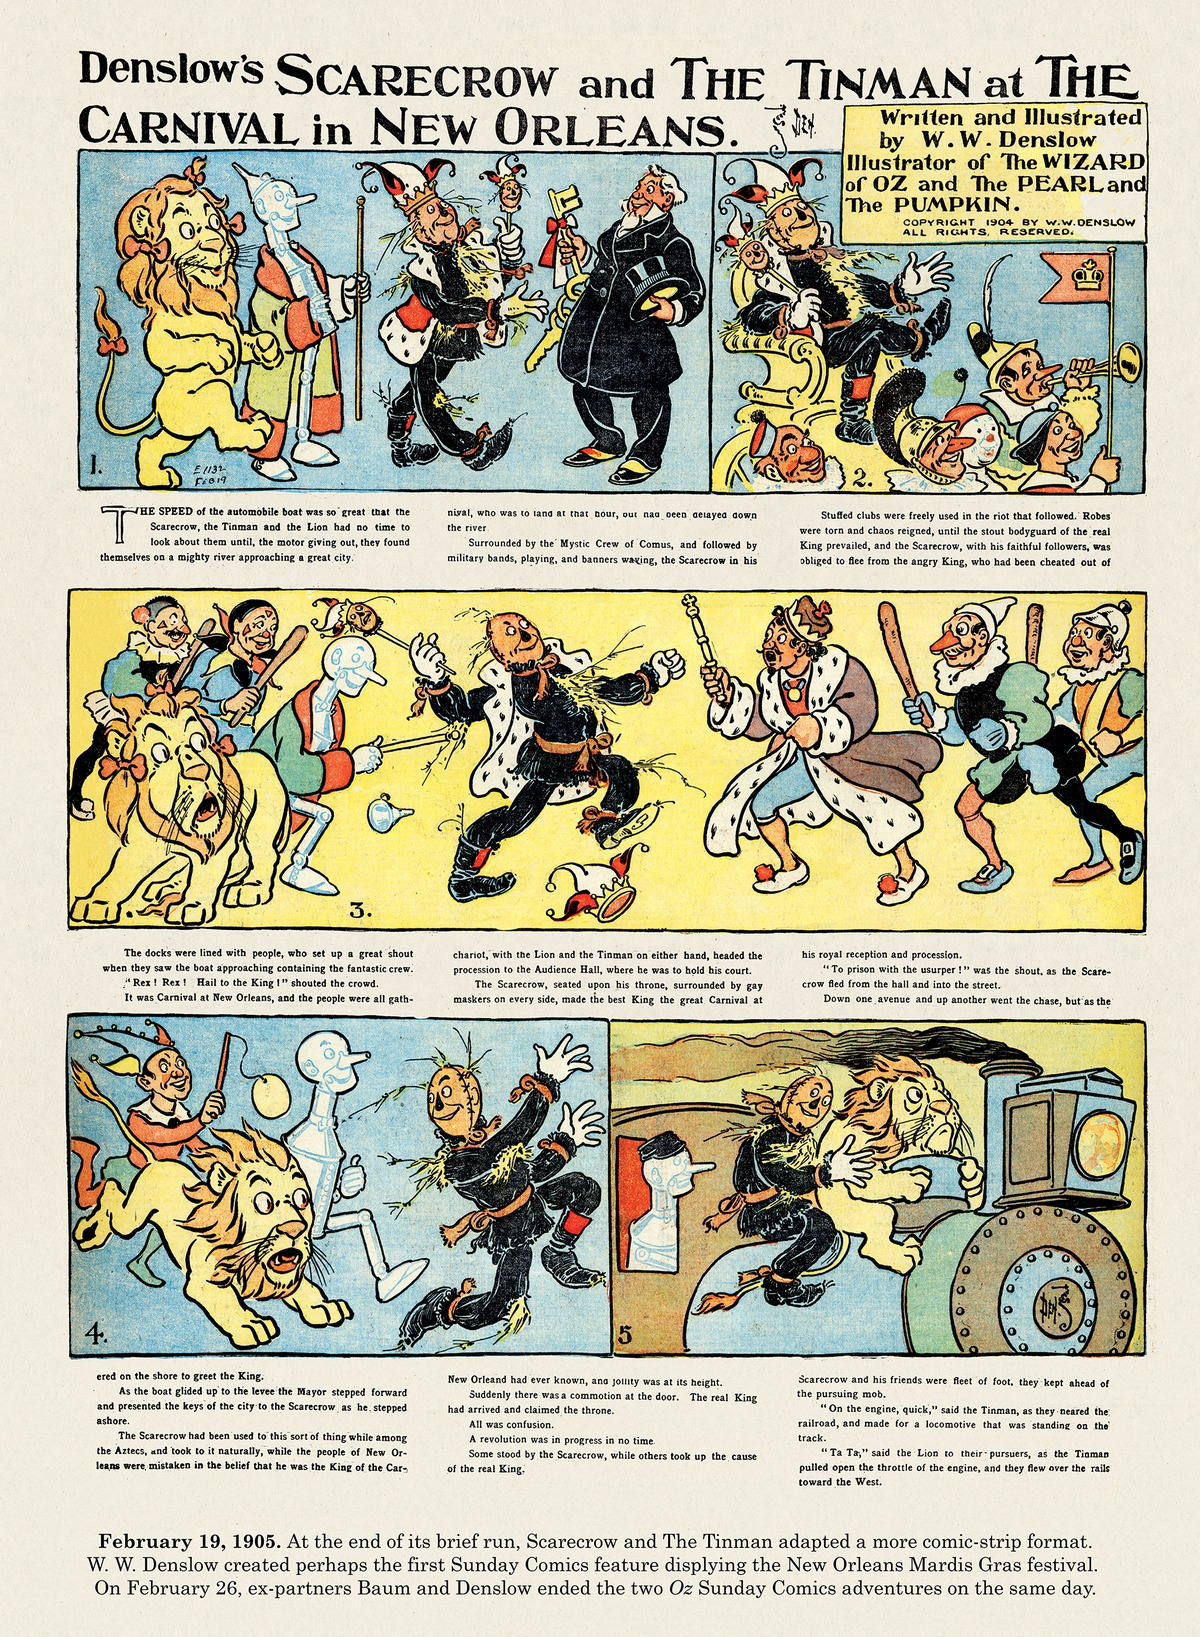 Origins of the Sunday Comics by Peter Maresca on Wed, 10 Feb 2021